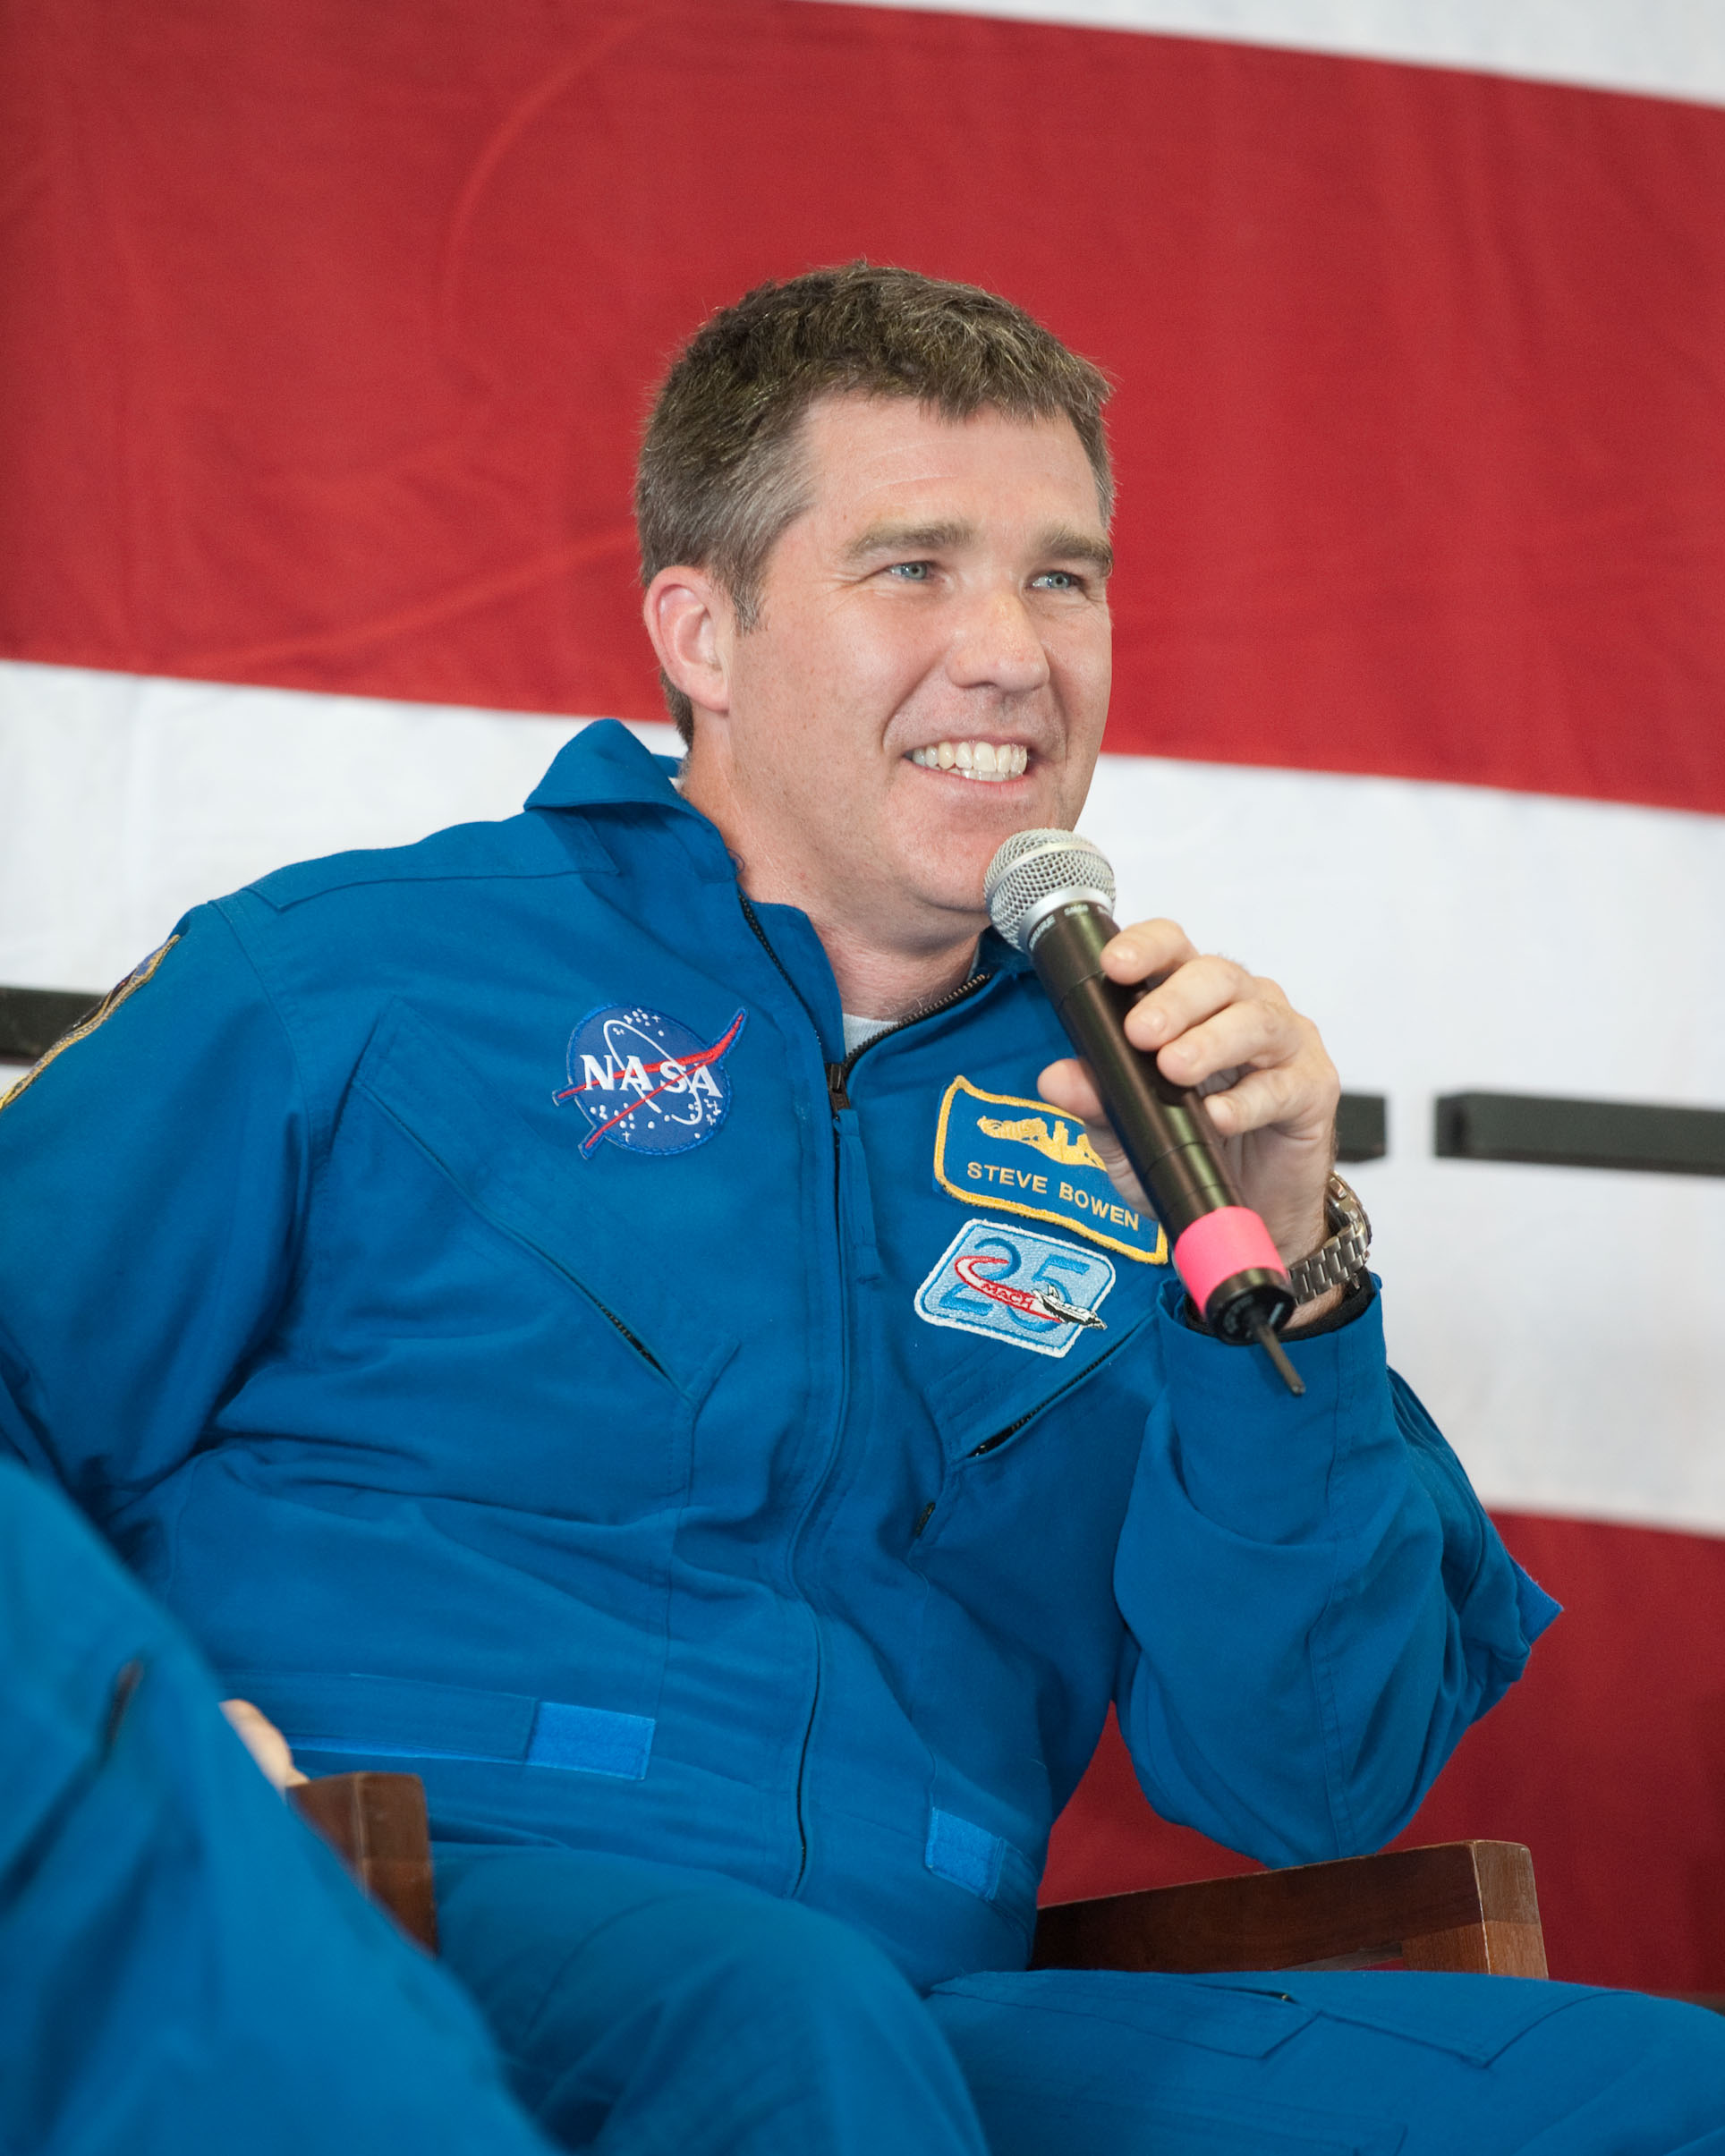 NASA Replaces Injured Astronaut for Next Shuttle Mission